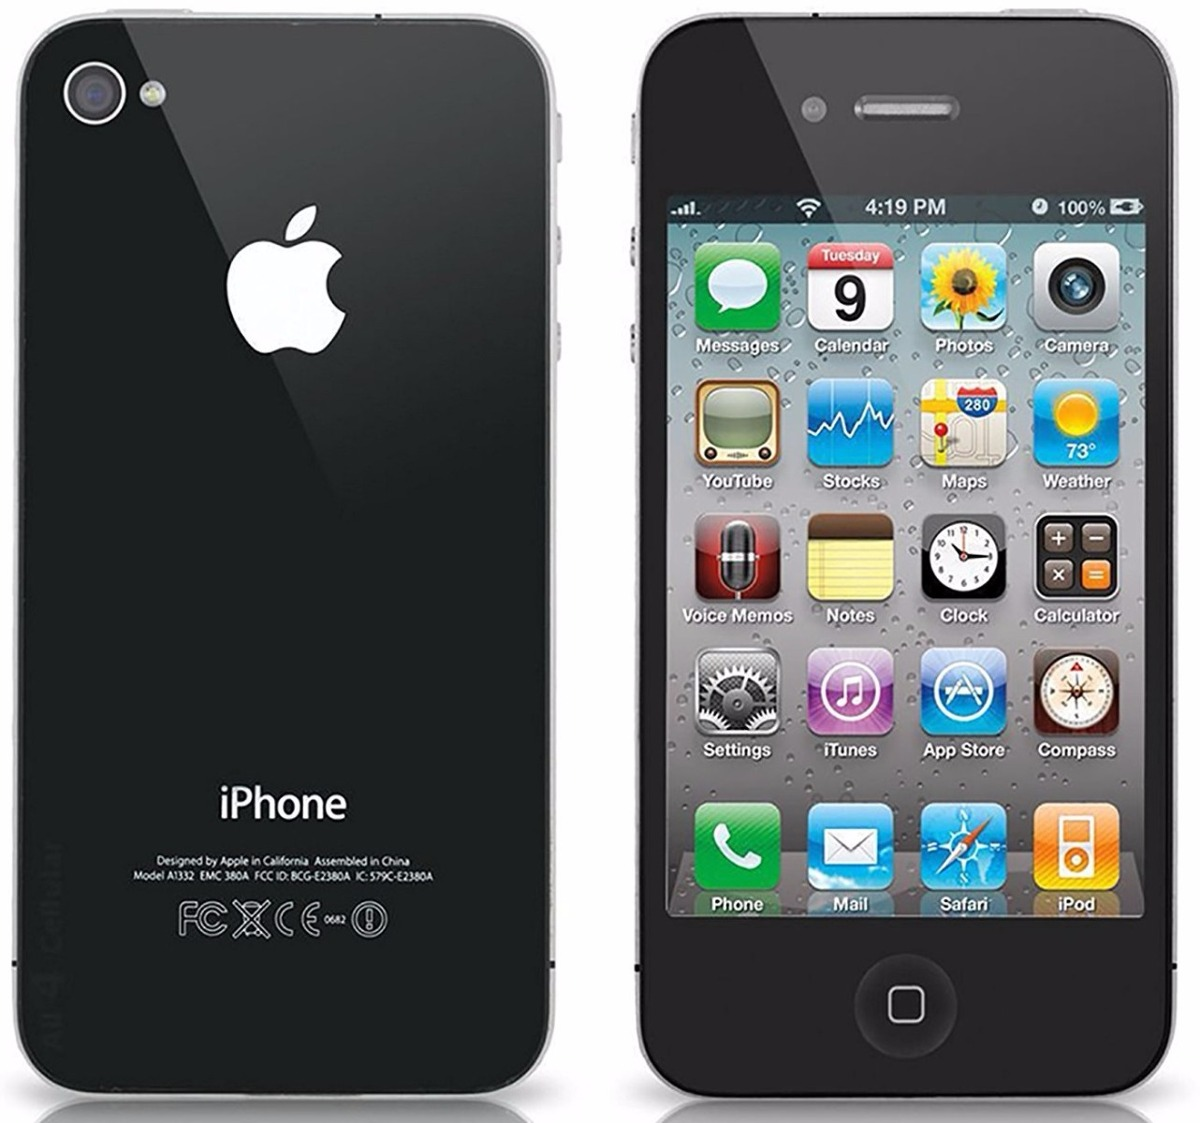 Vender Iphone 4 Libre Apple Iphone 4 A1332 512mb 8gb 699 000 En Mercado Libre